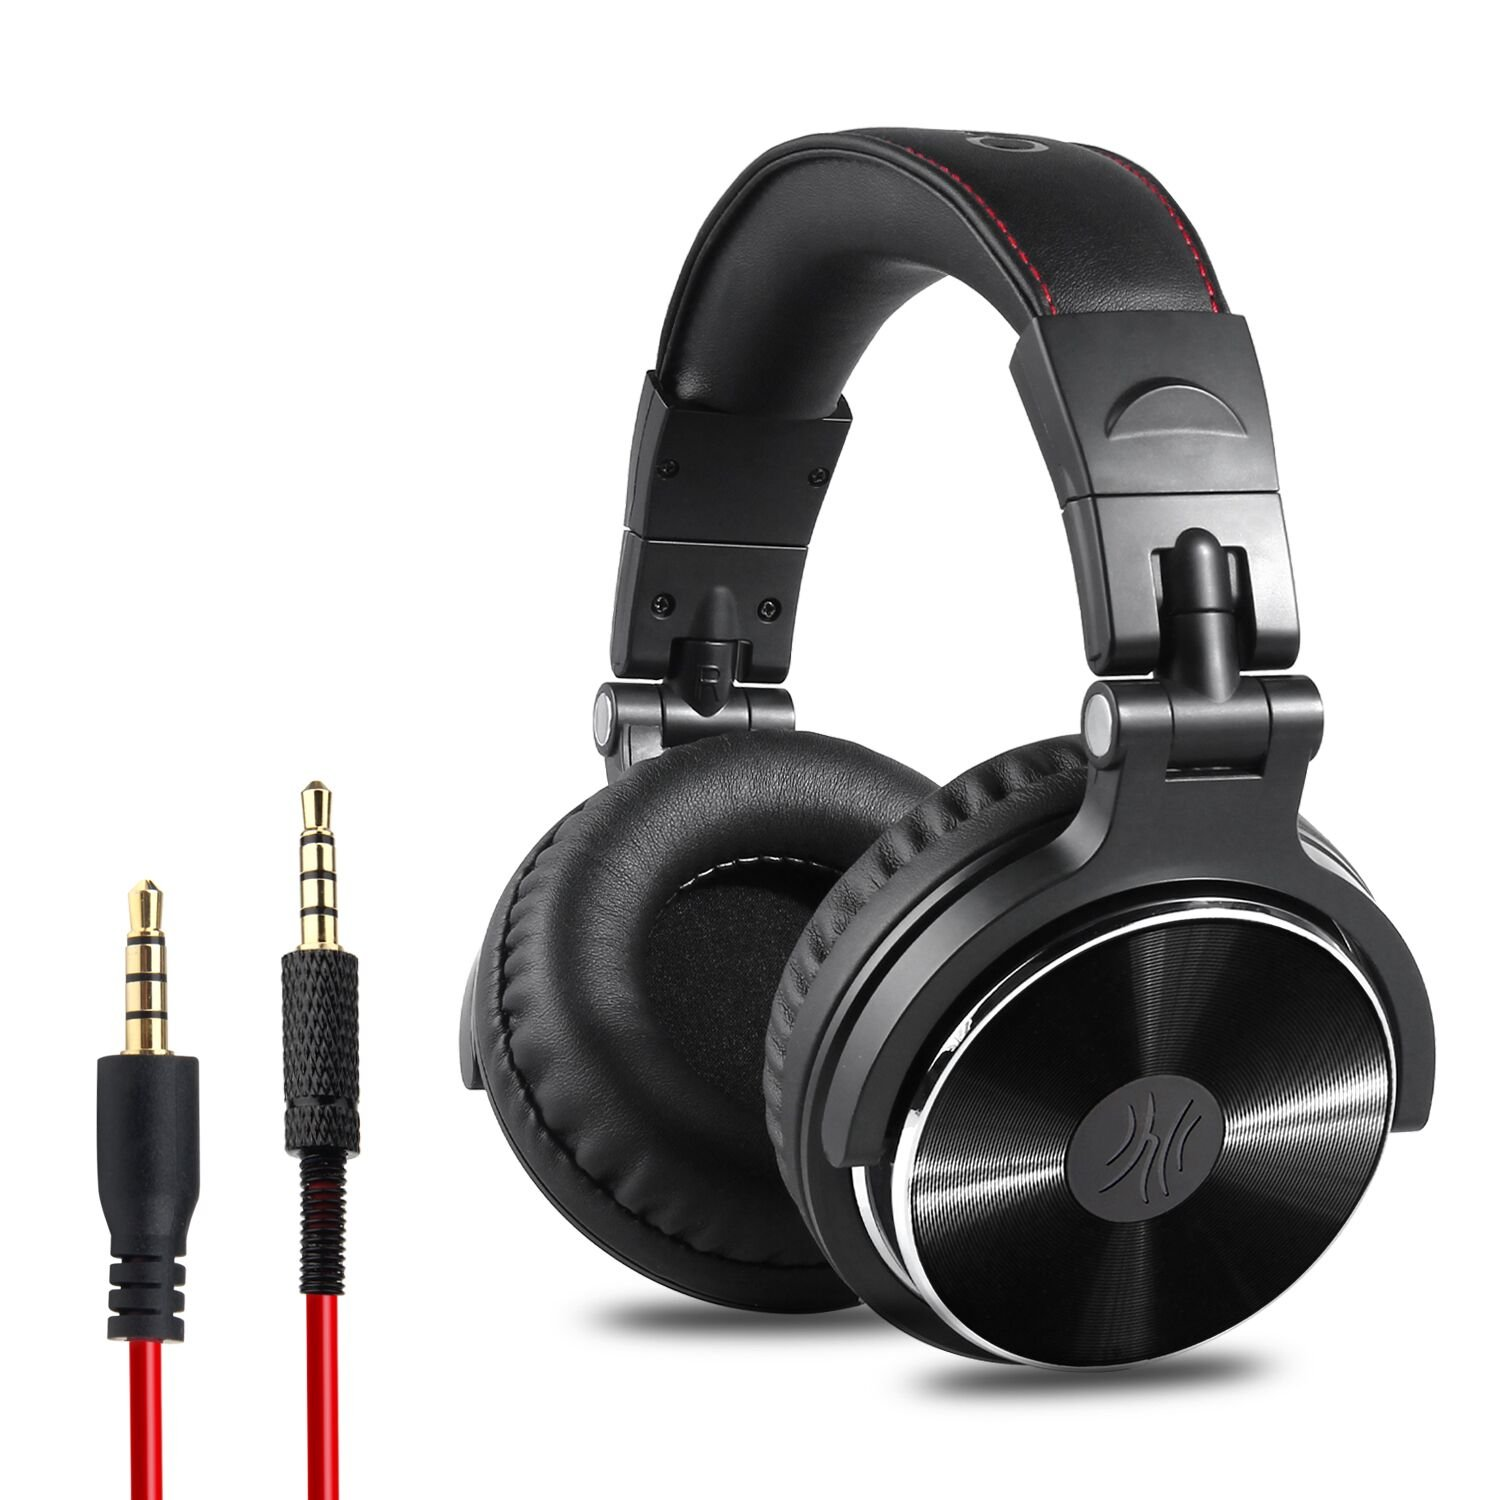 OneOdio Adapter-Free Closed Back Over-Ear DJ Stereo Monitor Headphones, Professional Studio Monitor & Mixing, Telescopic Arms with Scale, Newest 50mm Neodymium Drivers - Black by OneOdio